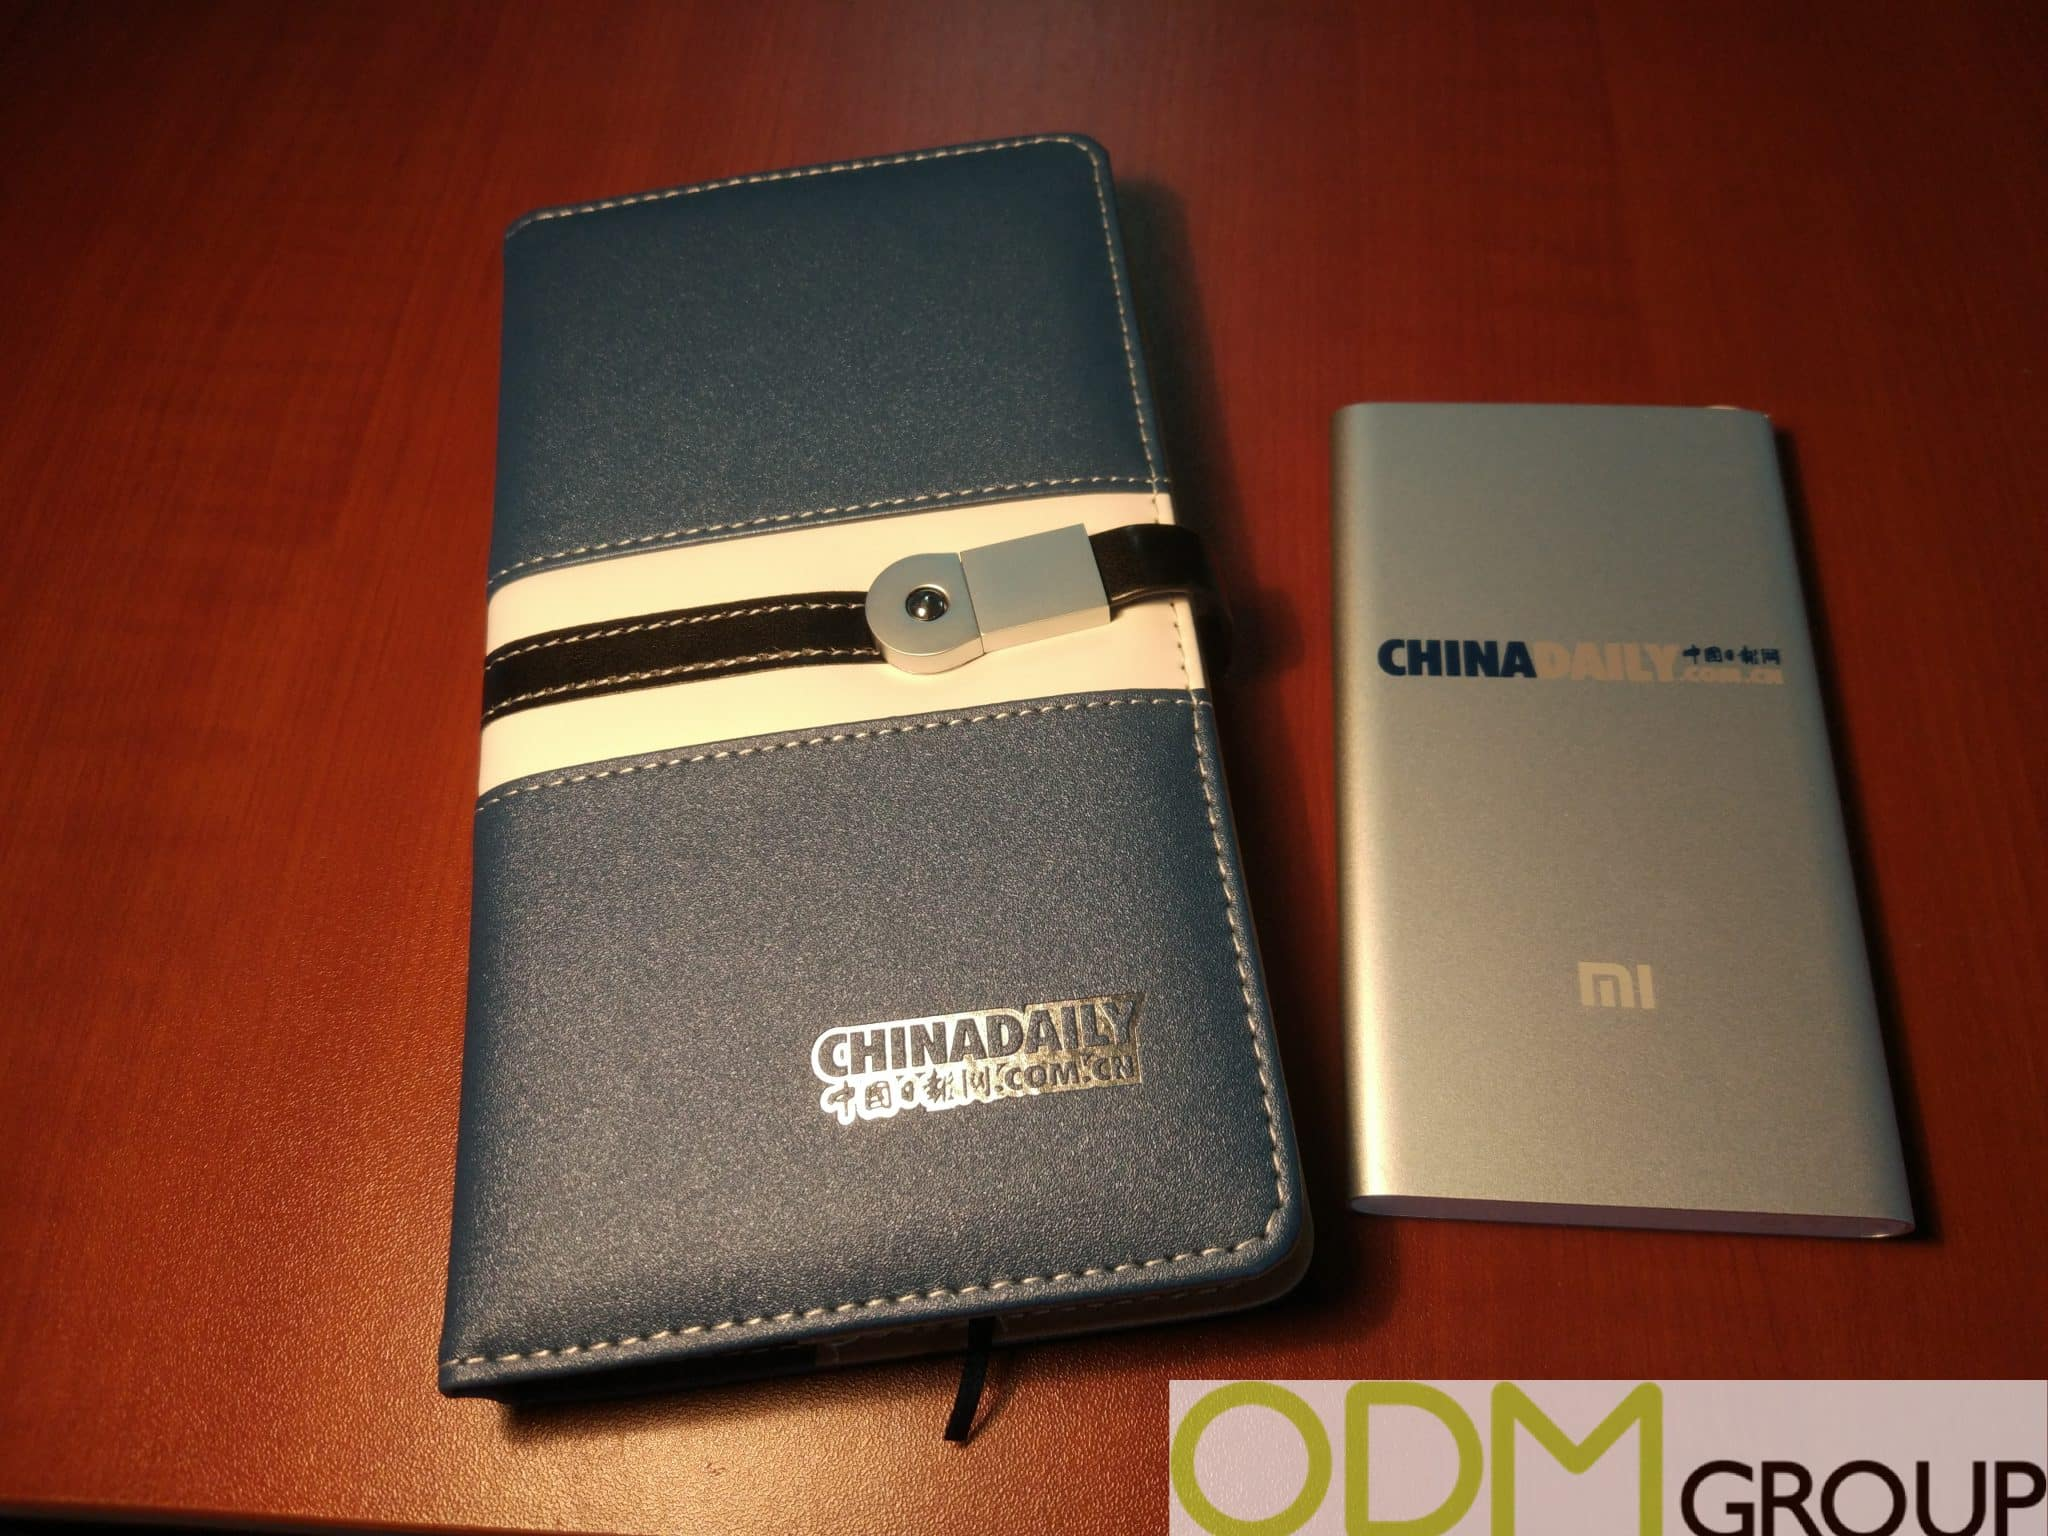 Competitive Promotion - Branded Notebook and Powerbank